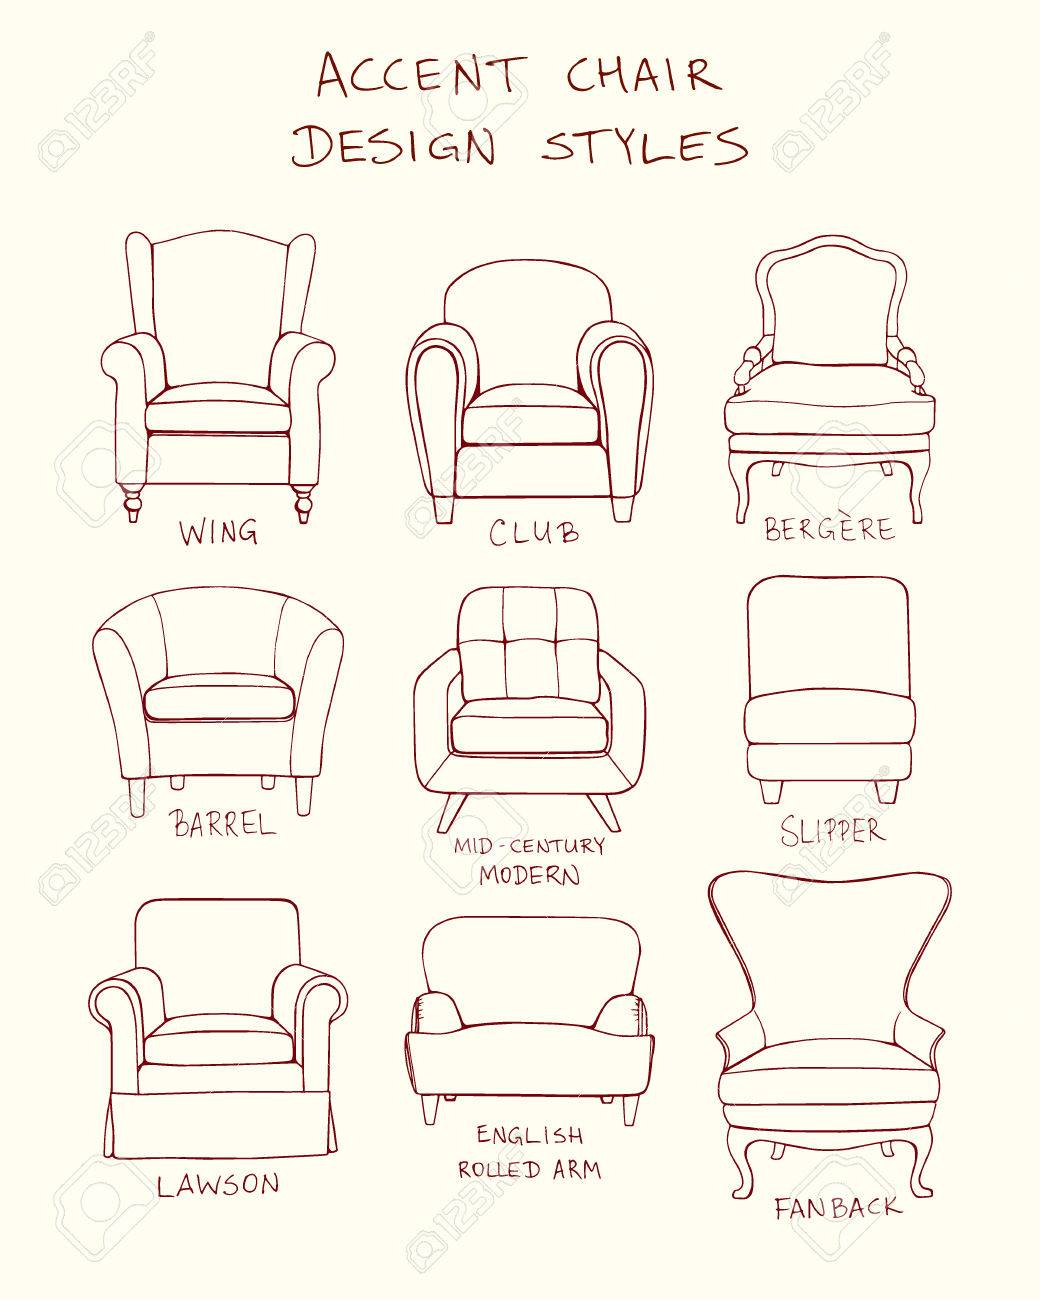 chair design drawing. Vector - Visual Guide Of Accent Chair Design Styles. Drawing